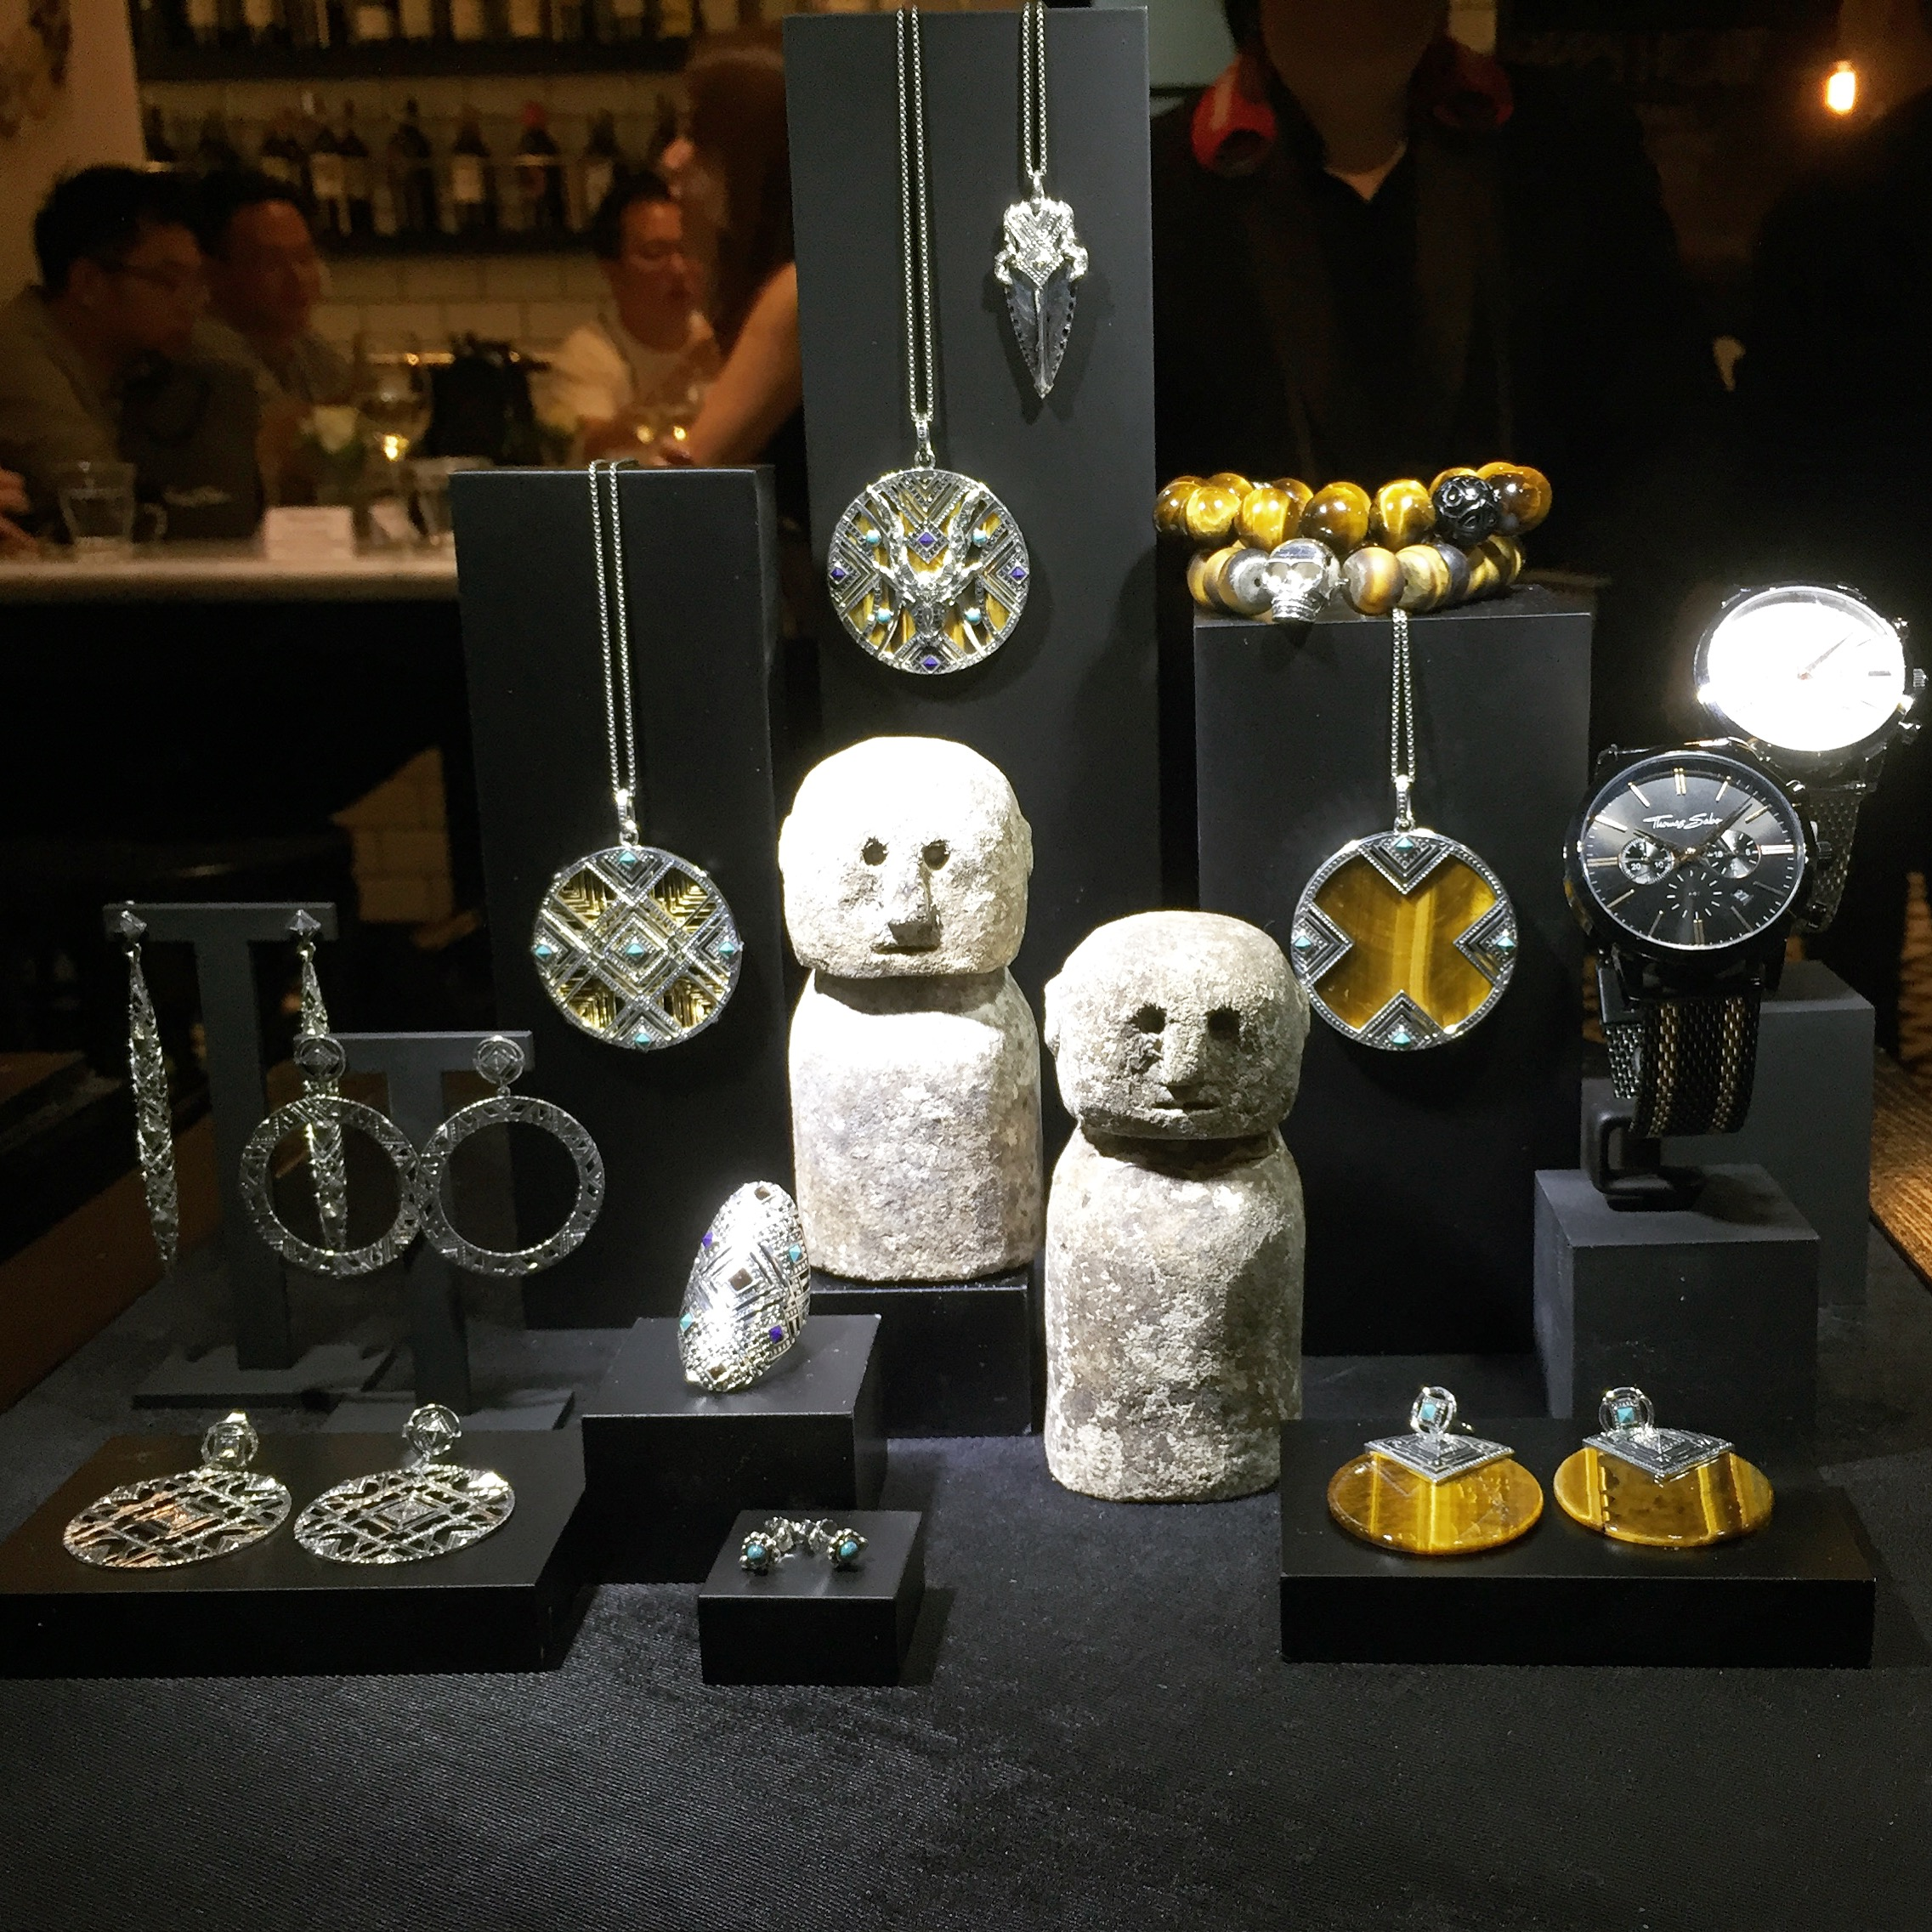 Another Thomas Sabo Spring/Summer collection which takes an ethnic theme, and of course the jewelry display decoration used matches the theme of the collection.